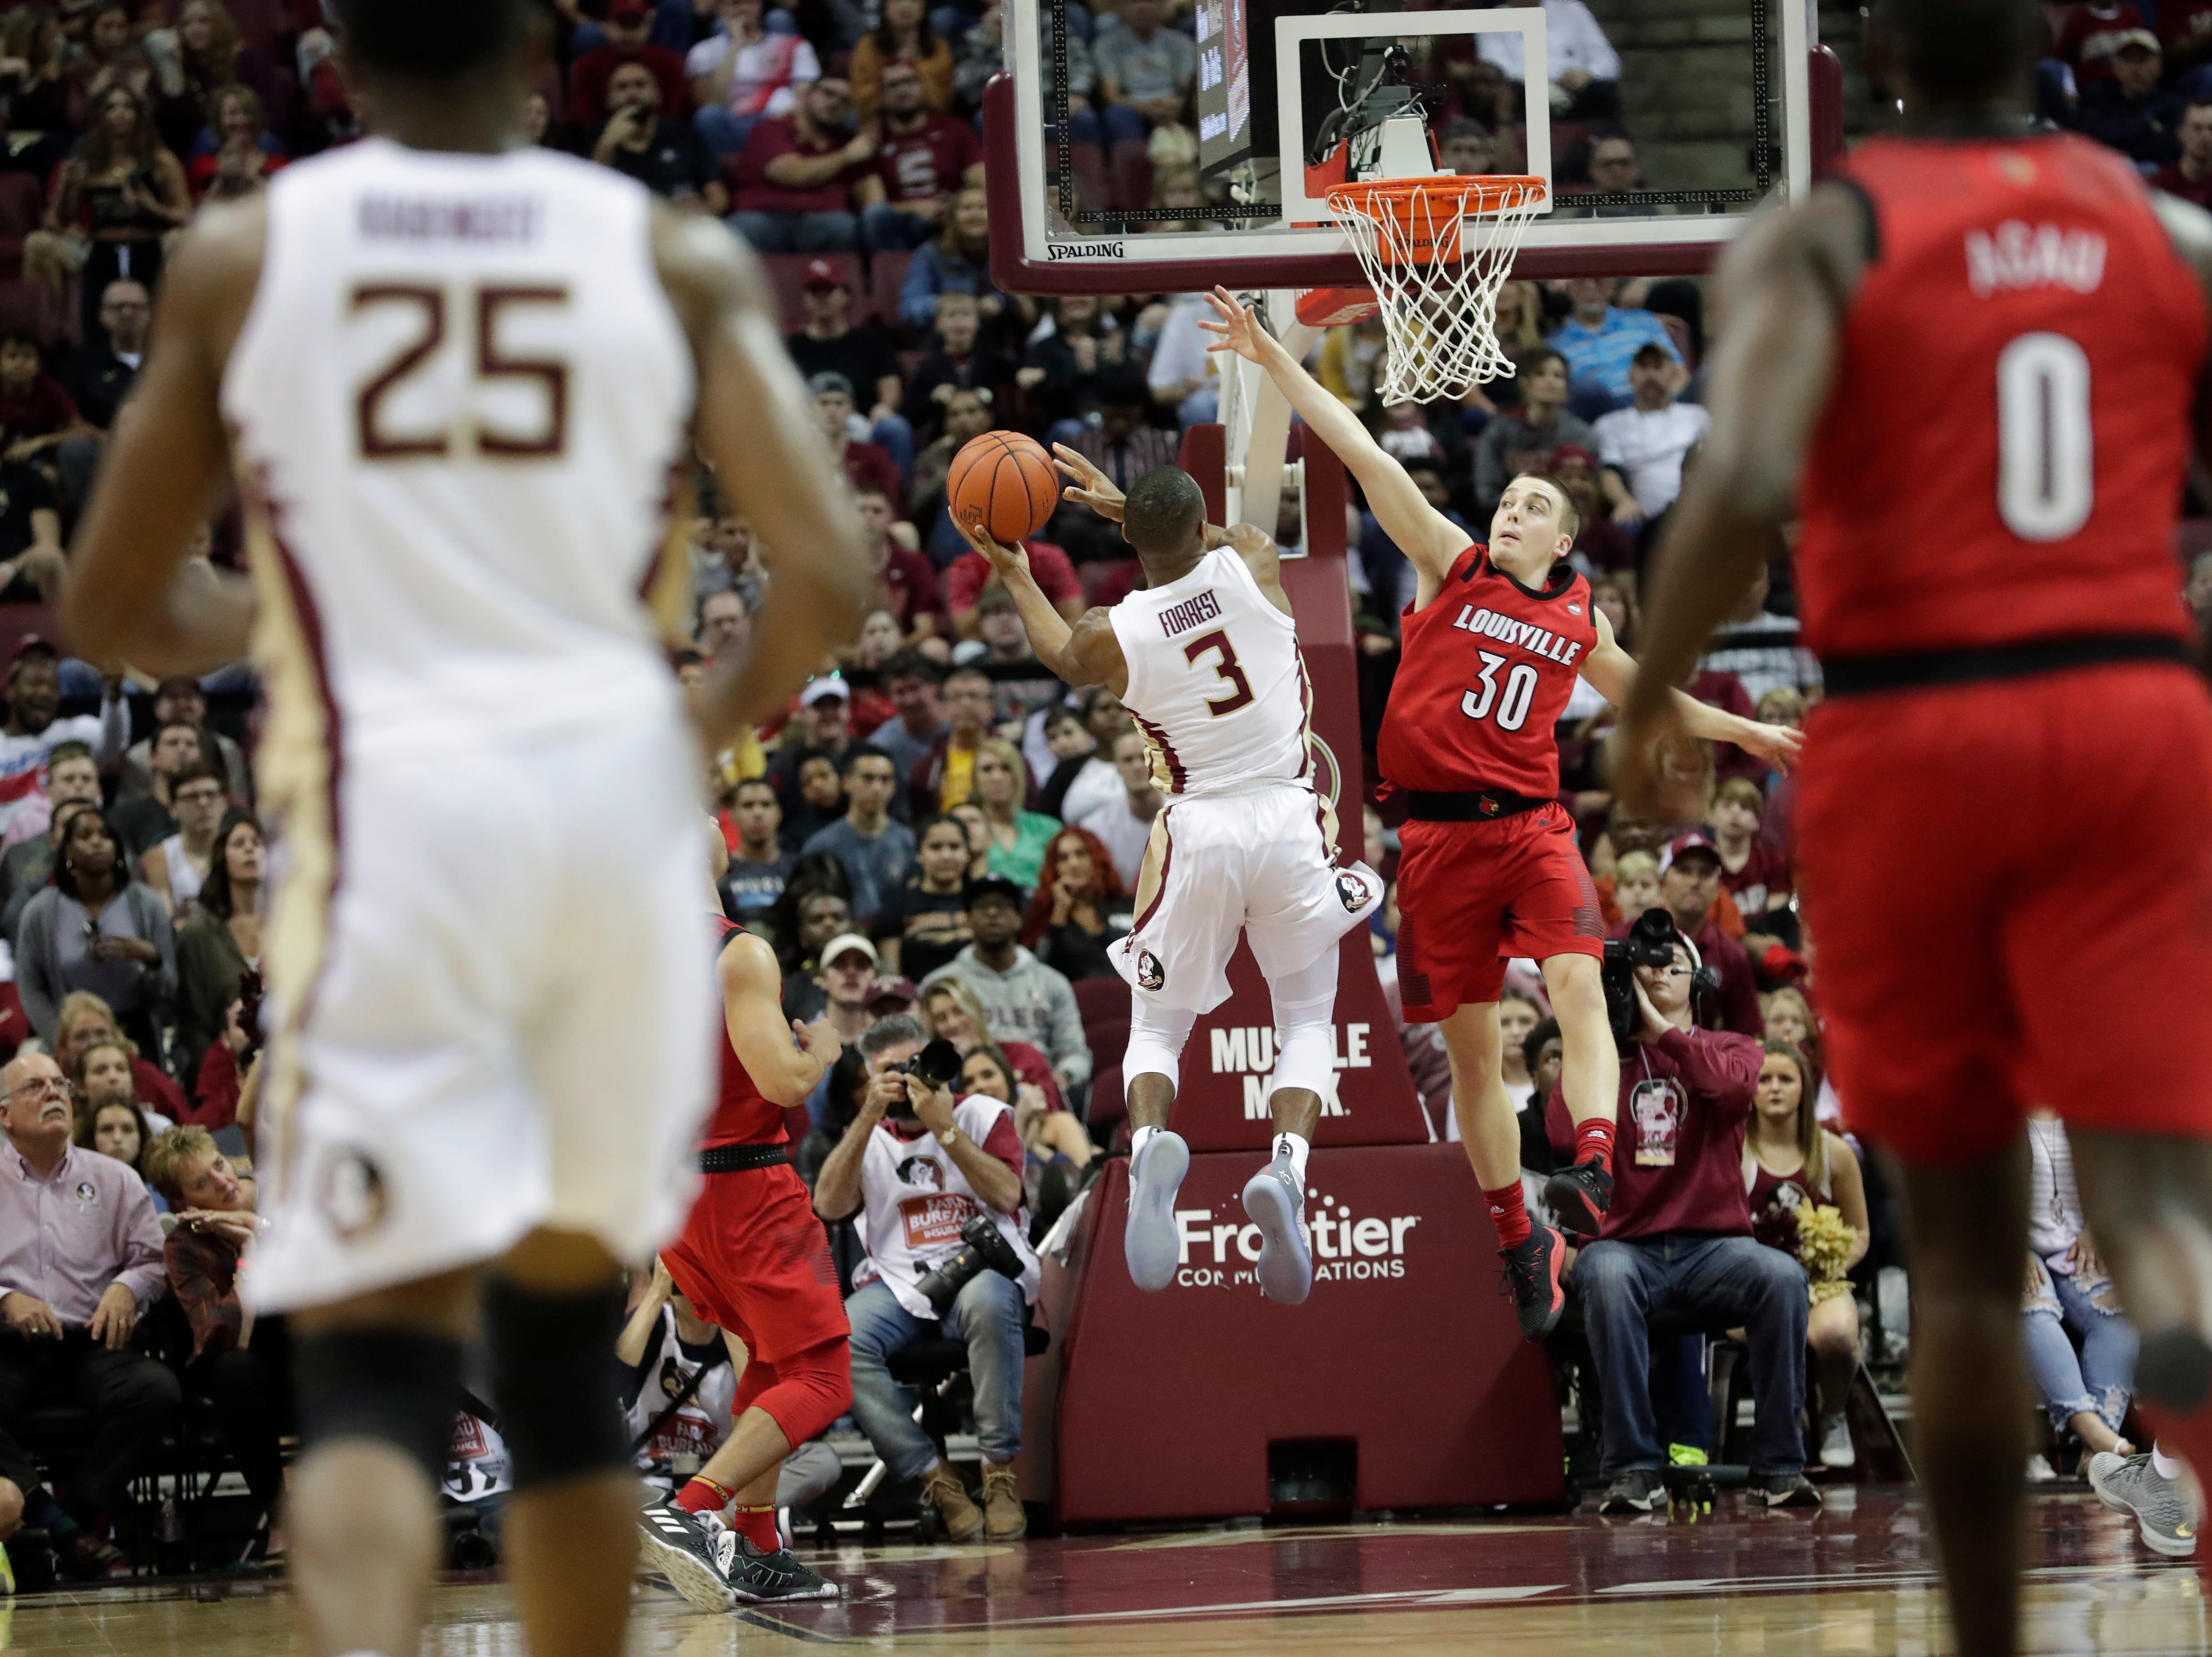 Florida State Seminoles guard Trent Forrest (3) drives in a layup with Louisville Cardinals guard Ryan McMahon (30) going up to block the shot. The Florida State Seminoles host the Louisville Cardinals at the Tucker Civic Center, Saturday Feb. 9, 2019.